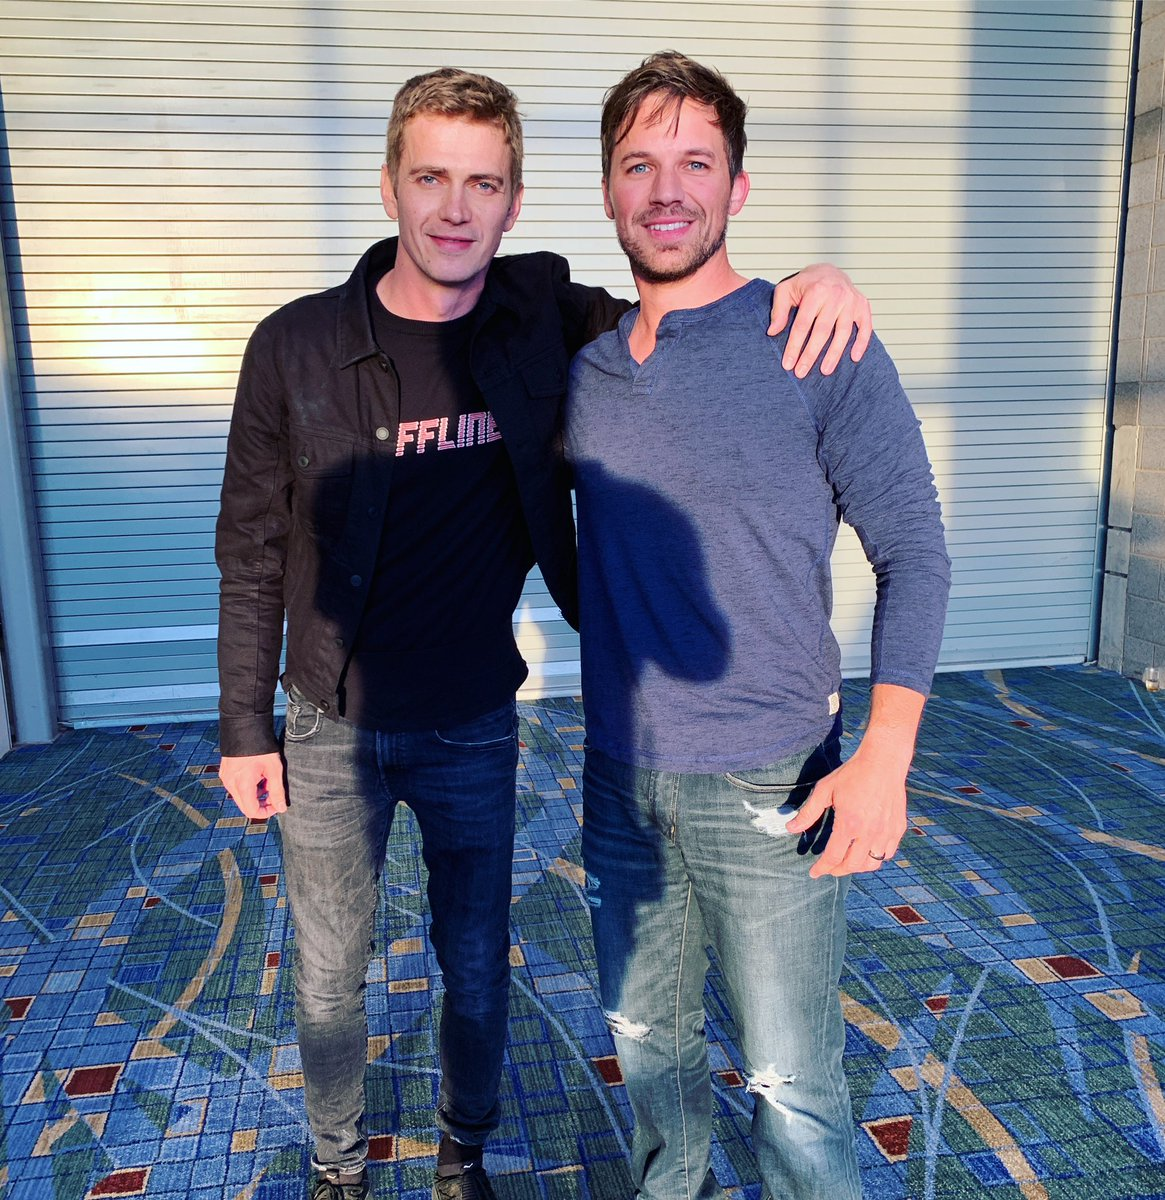 Two Anakin Skywalkers Unite In Awesome Star Wars Celebration Photo